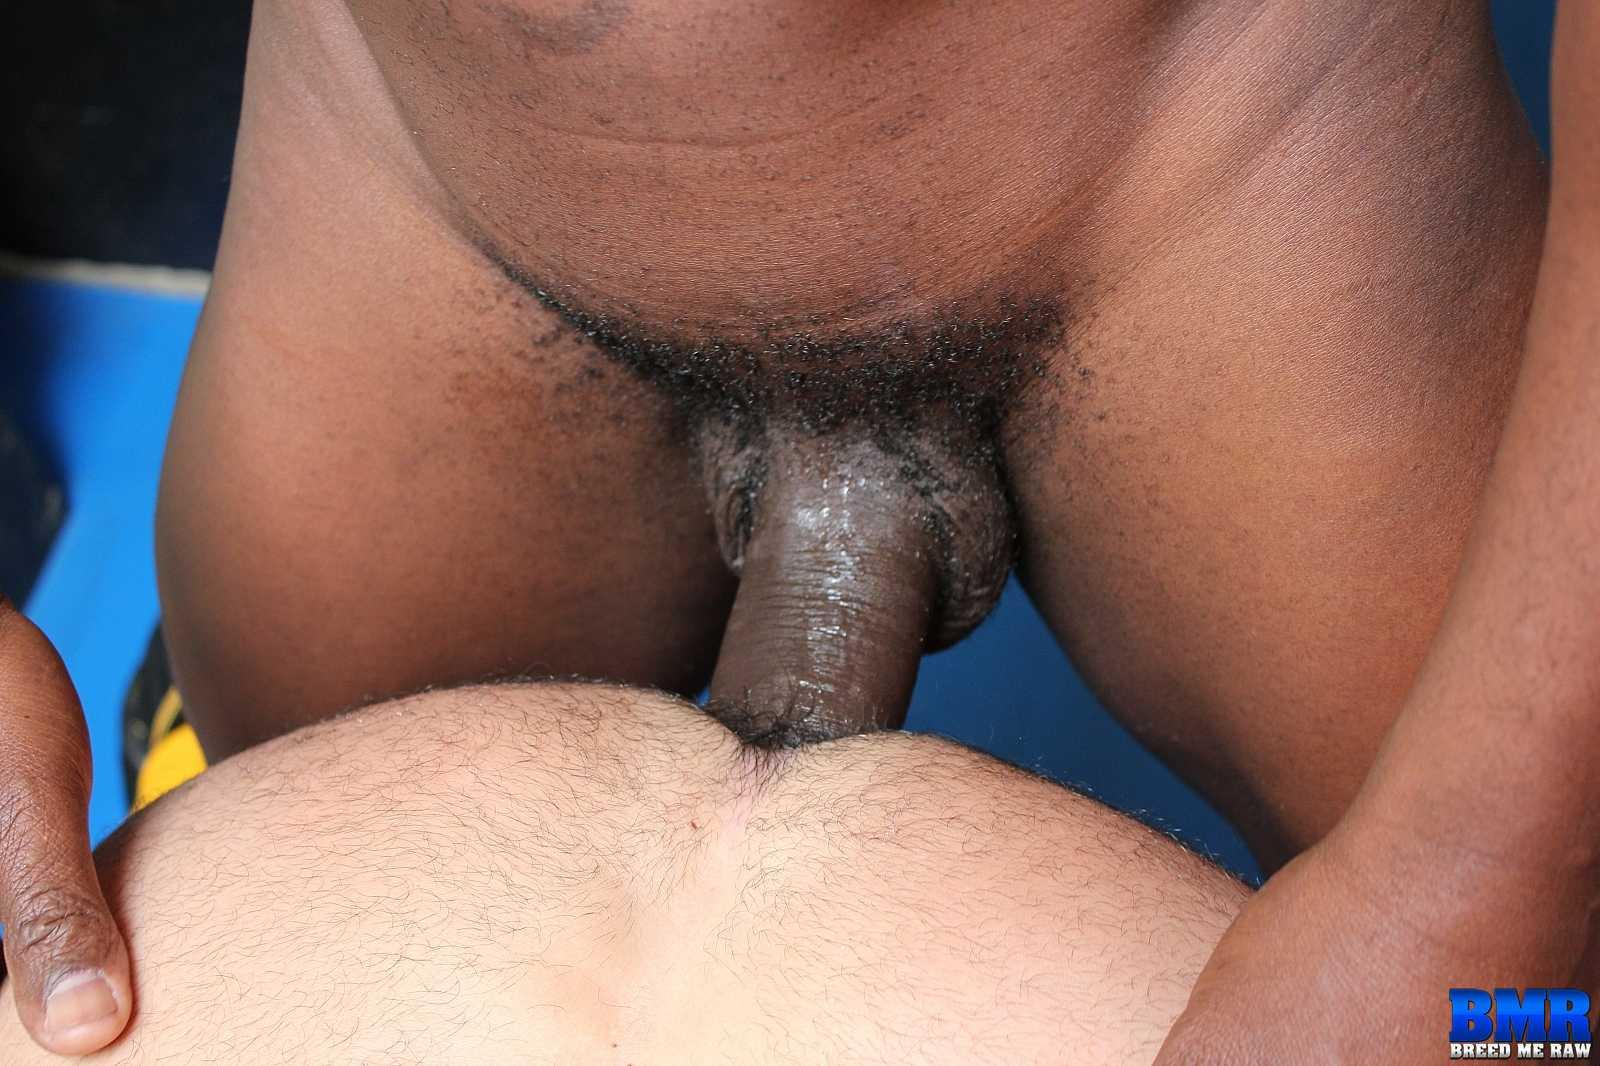 Breed Me Raw Cutler X and Adam Russo Black Guy With Big Black Cock Barebacking White Guy Amateur Gay Porn 04 Real Life Boyfriends Cutler X Barebacking Adam Russo